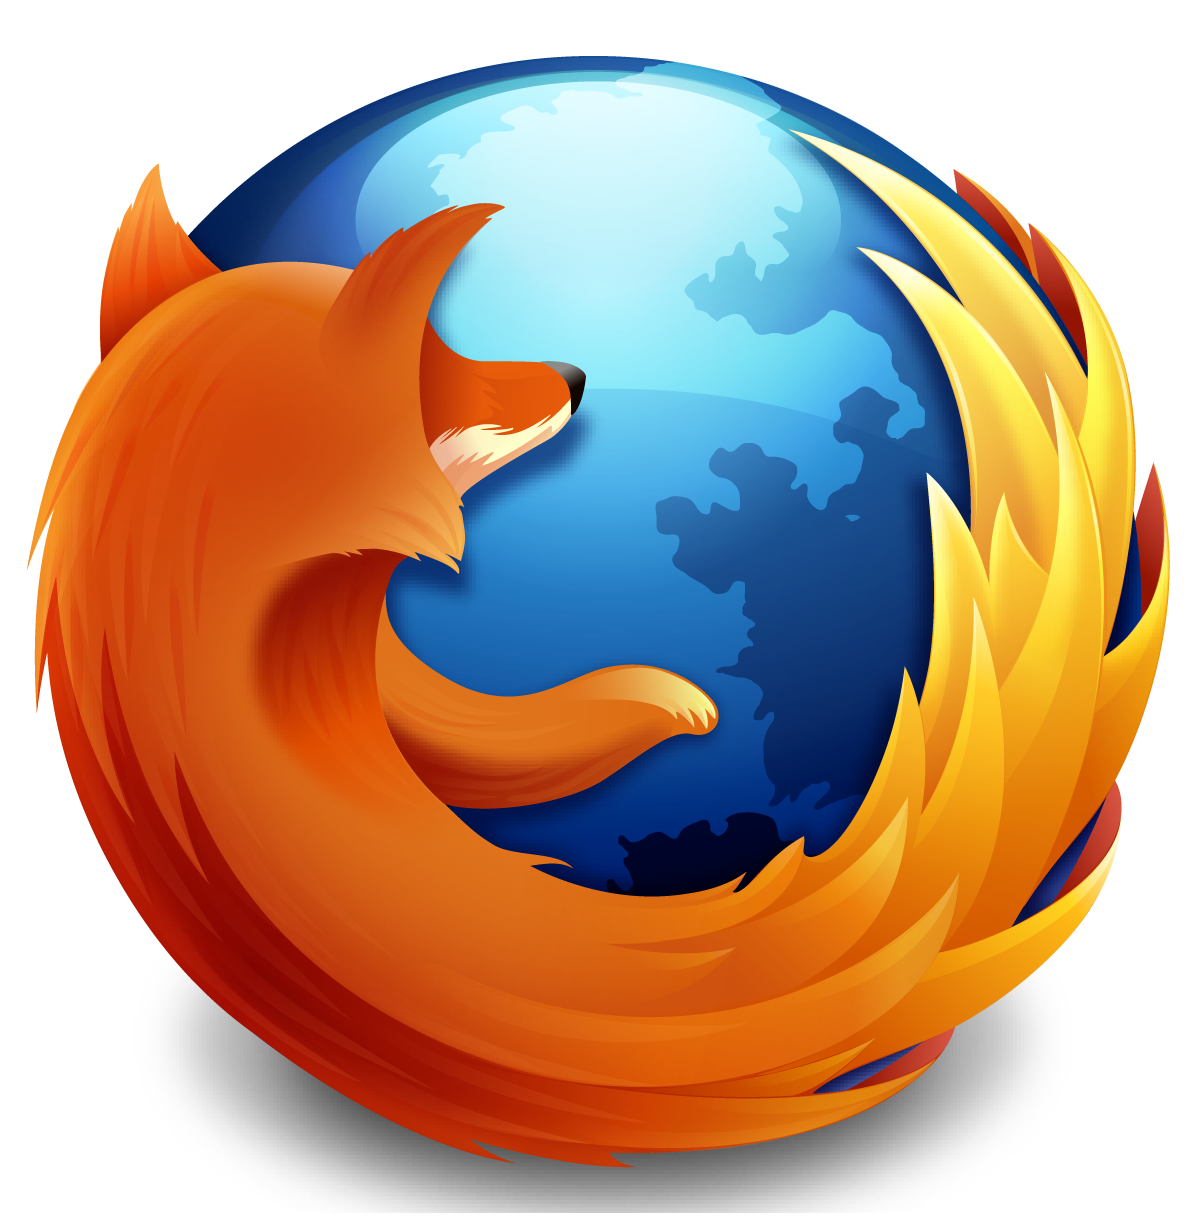 Firefox drawing red fox. Making the logo from